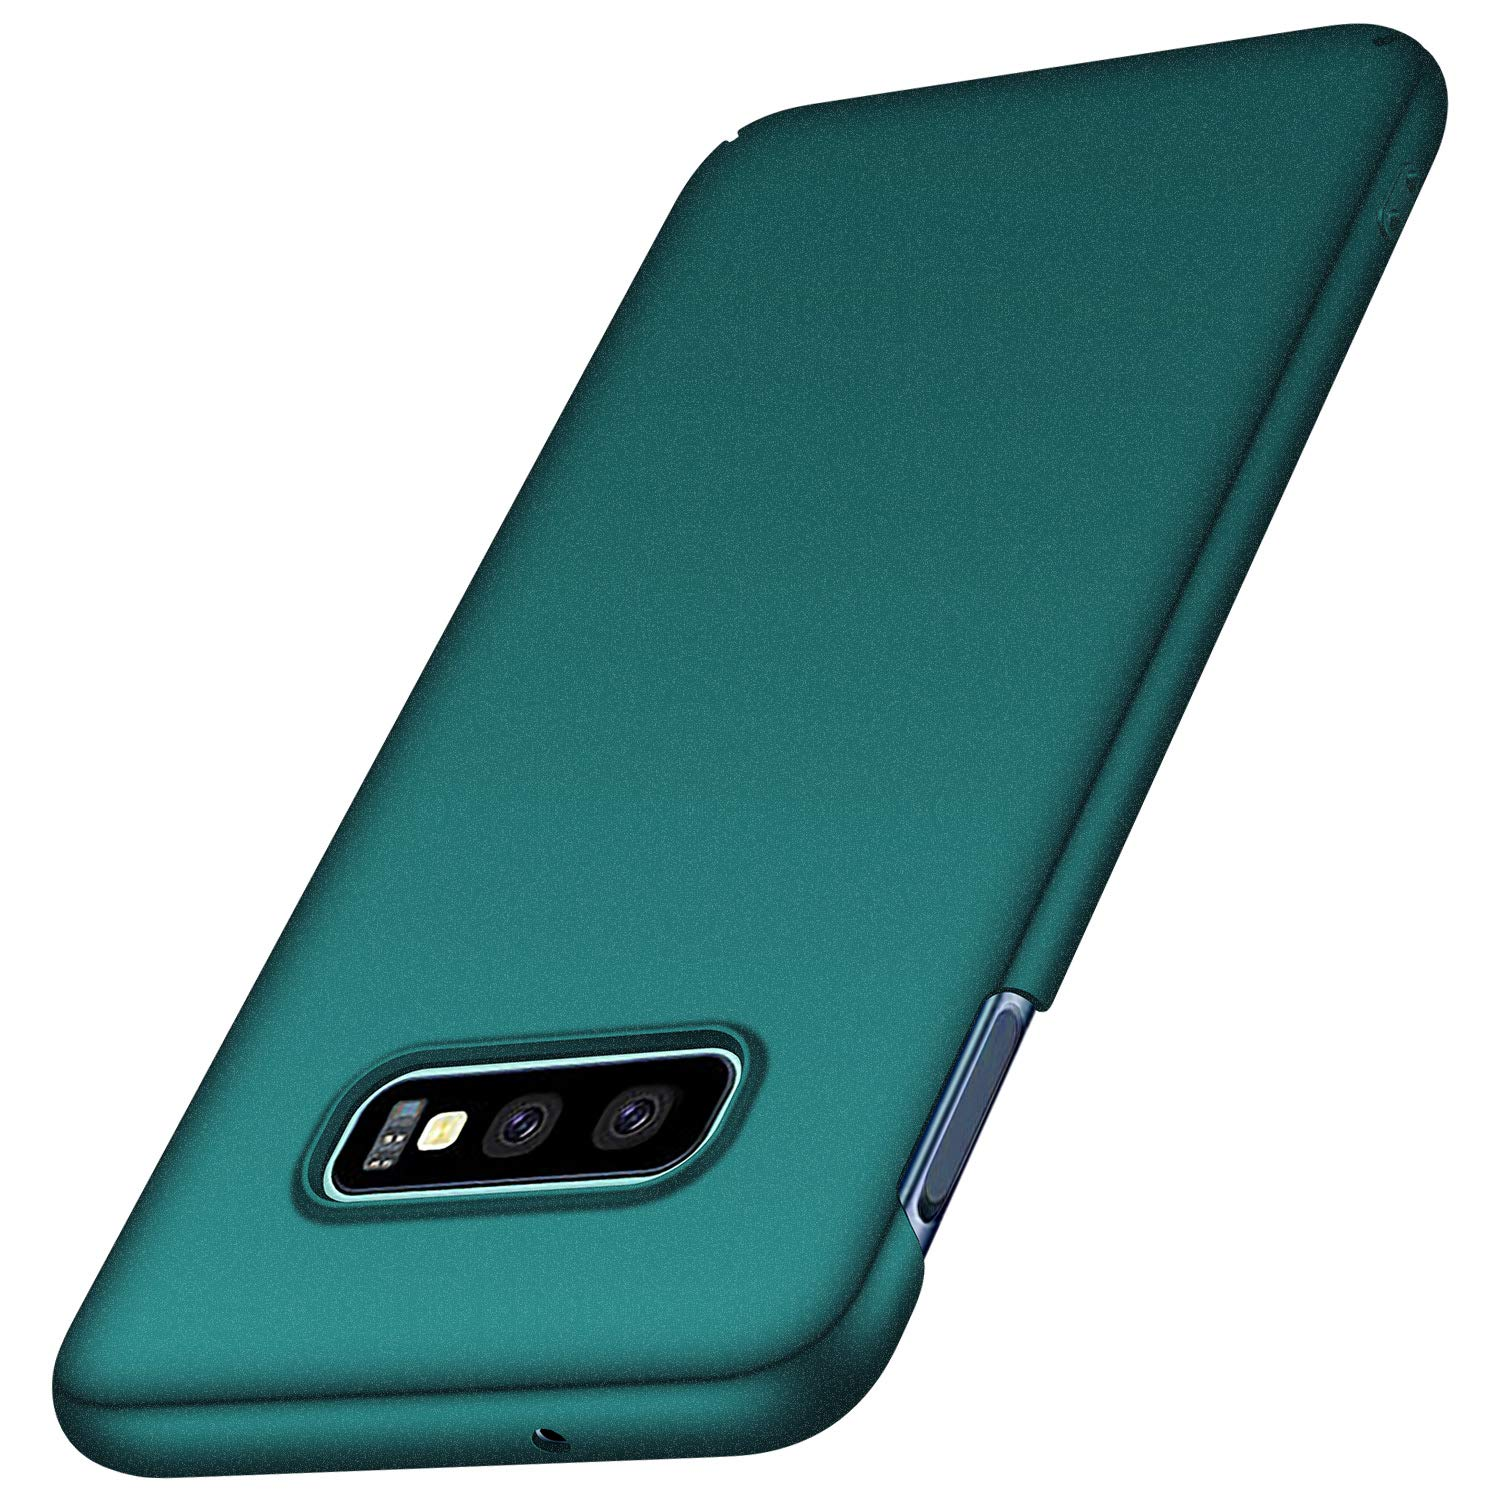 10 best cases for Samsung Galaxy S10e